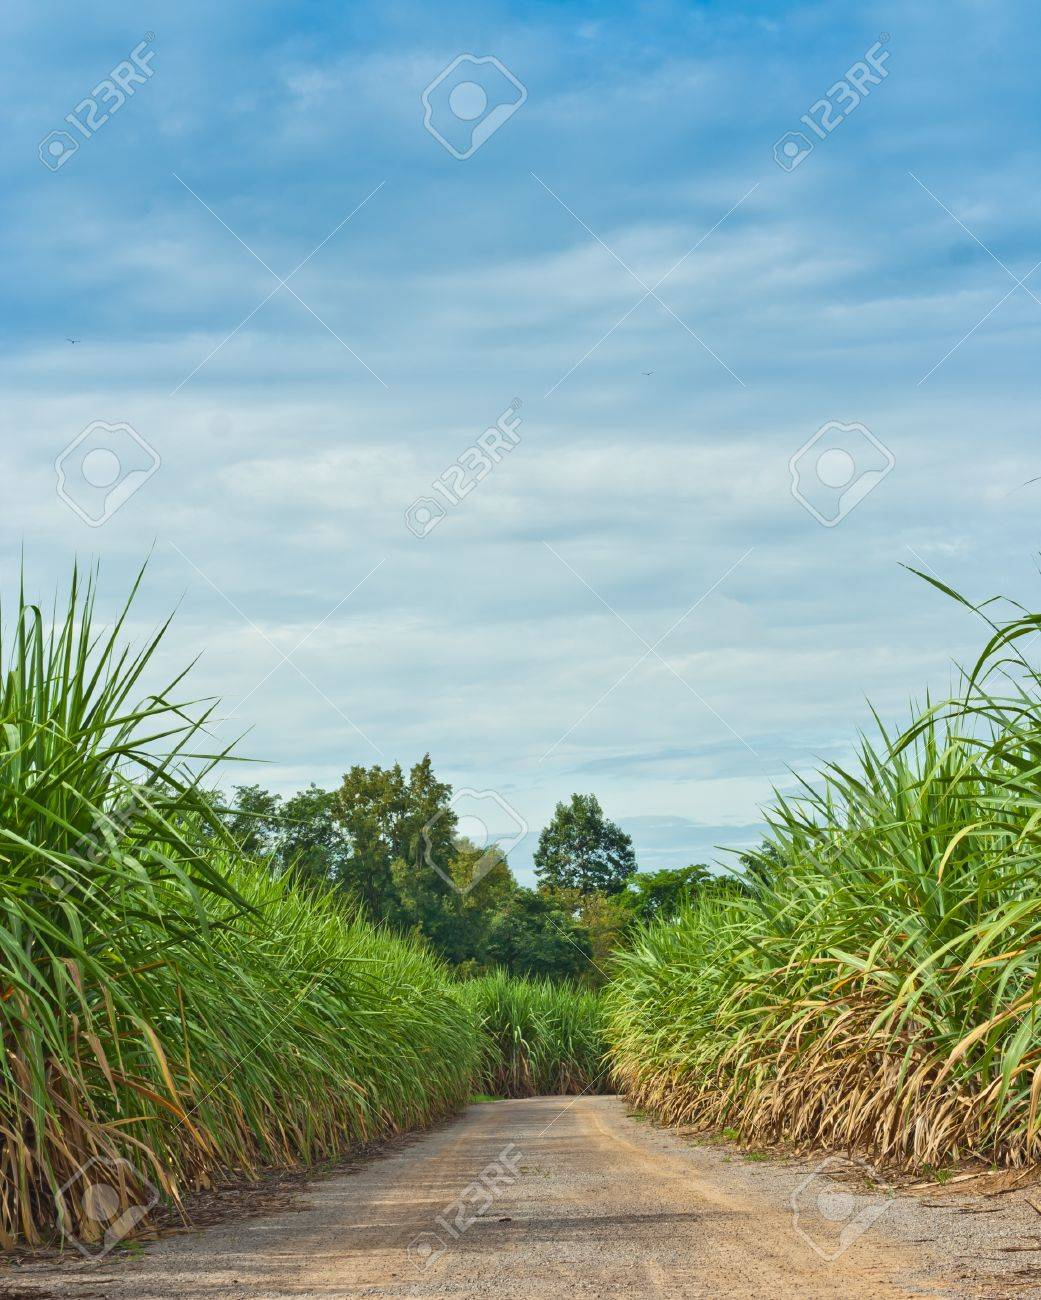 road in sugarcane field Stock Photo - 10425145